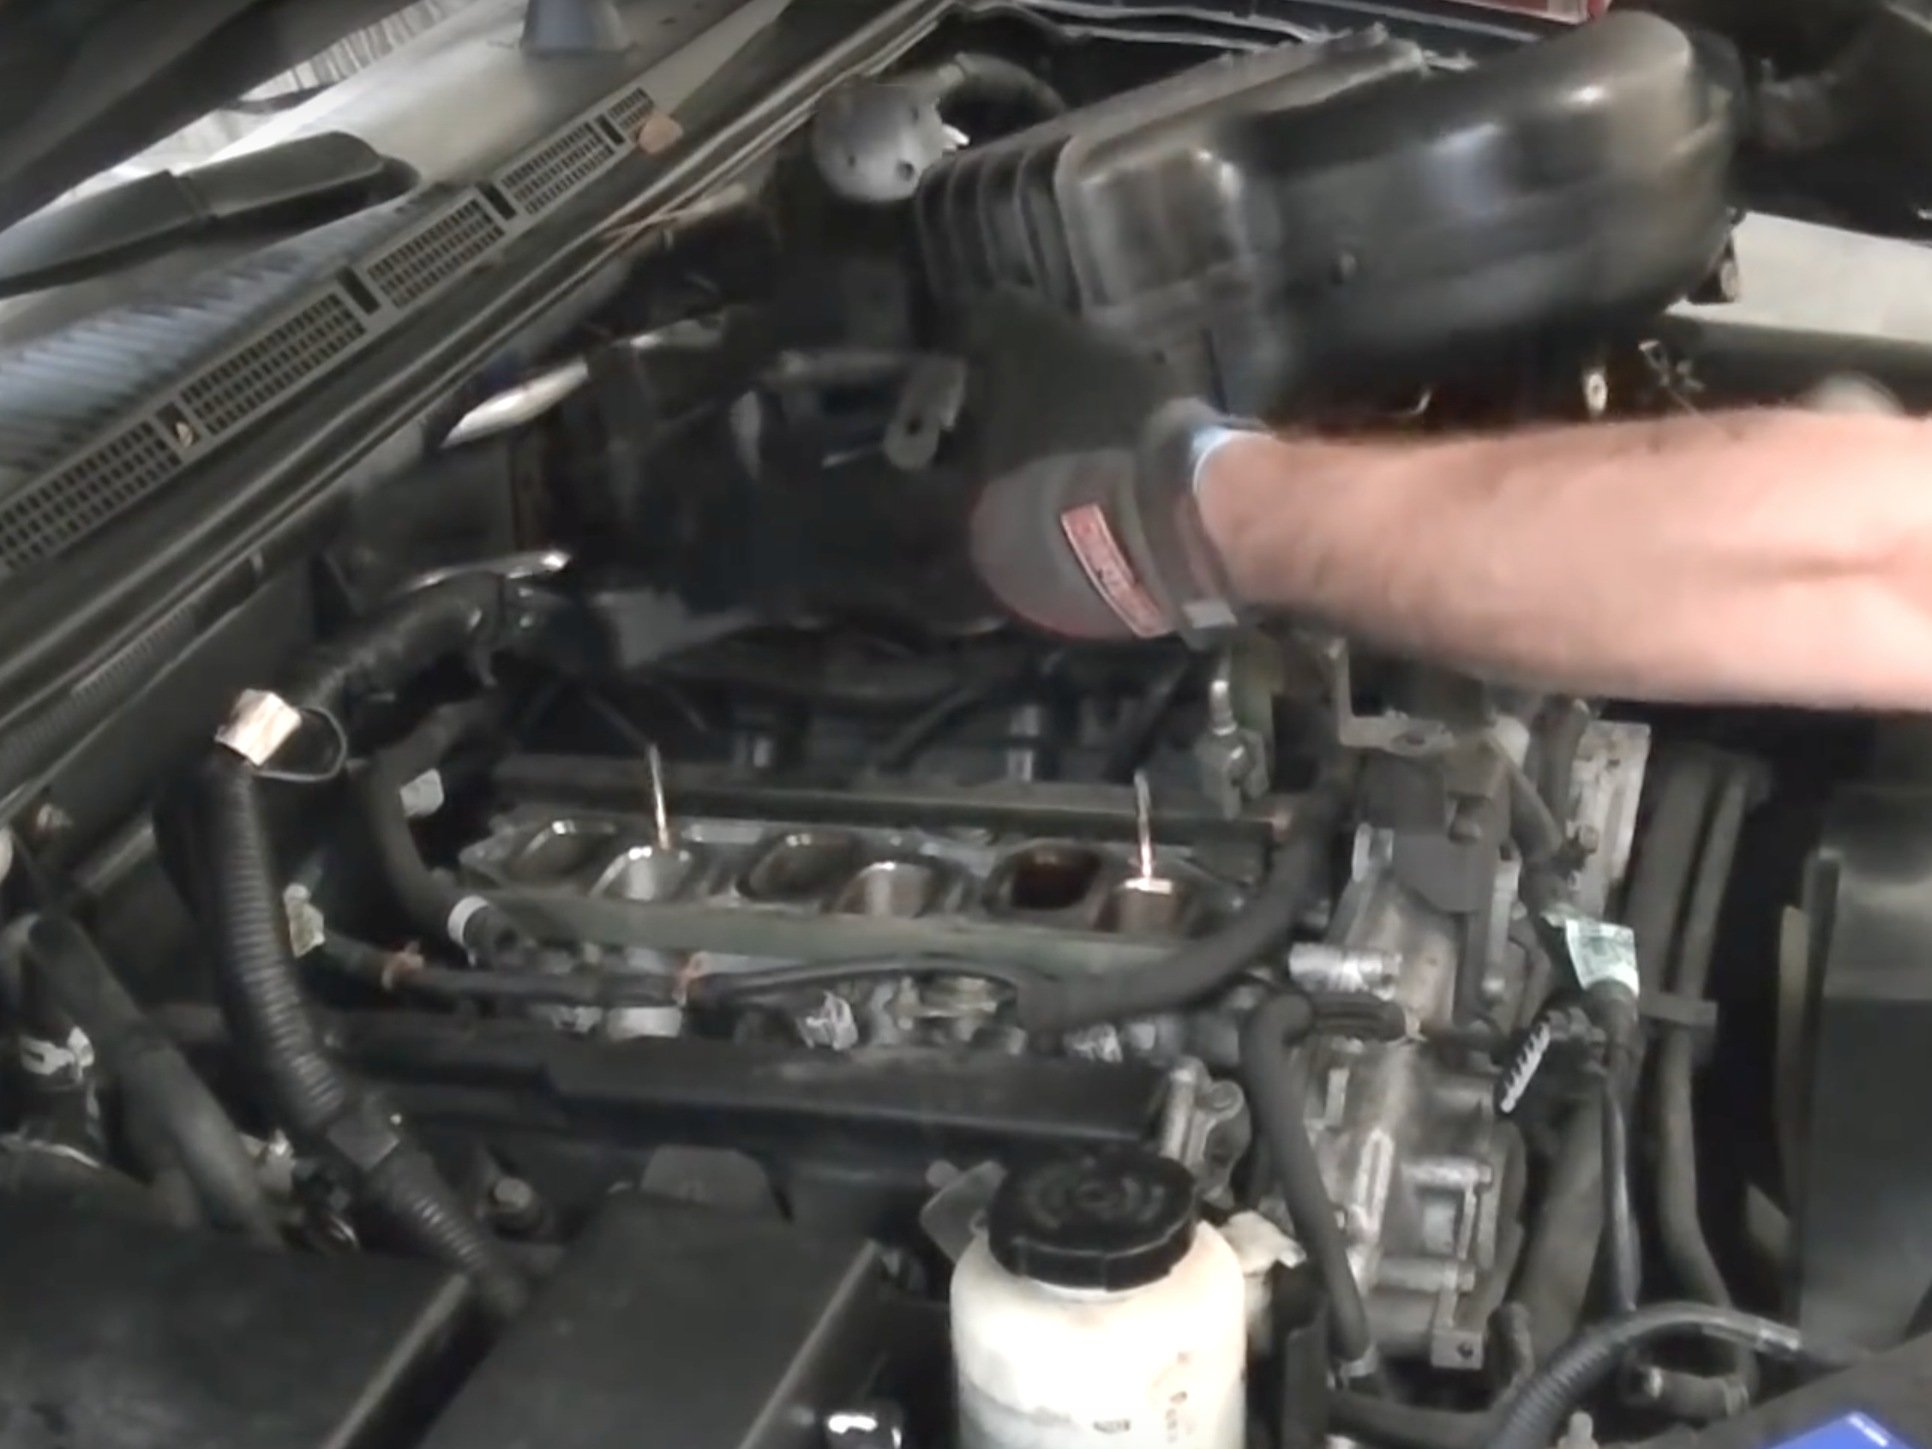 hight resolution of 2005 2015 nissan xterra spark plug replacement 2005 2006 2007 2008 2009 2010 2011 2012 2013 2014 2015 ifixit repair guide